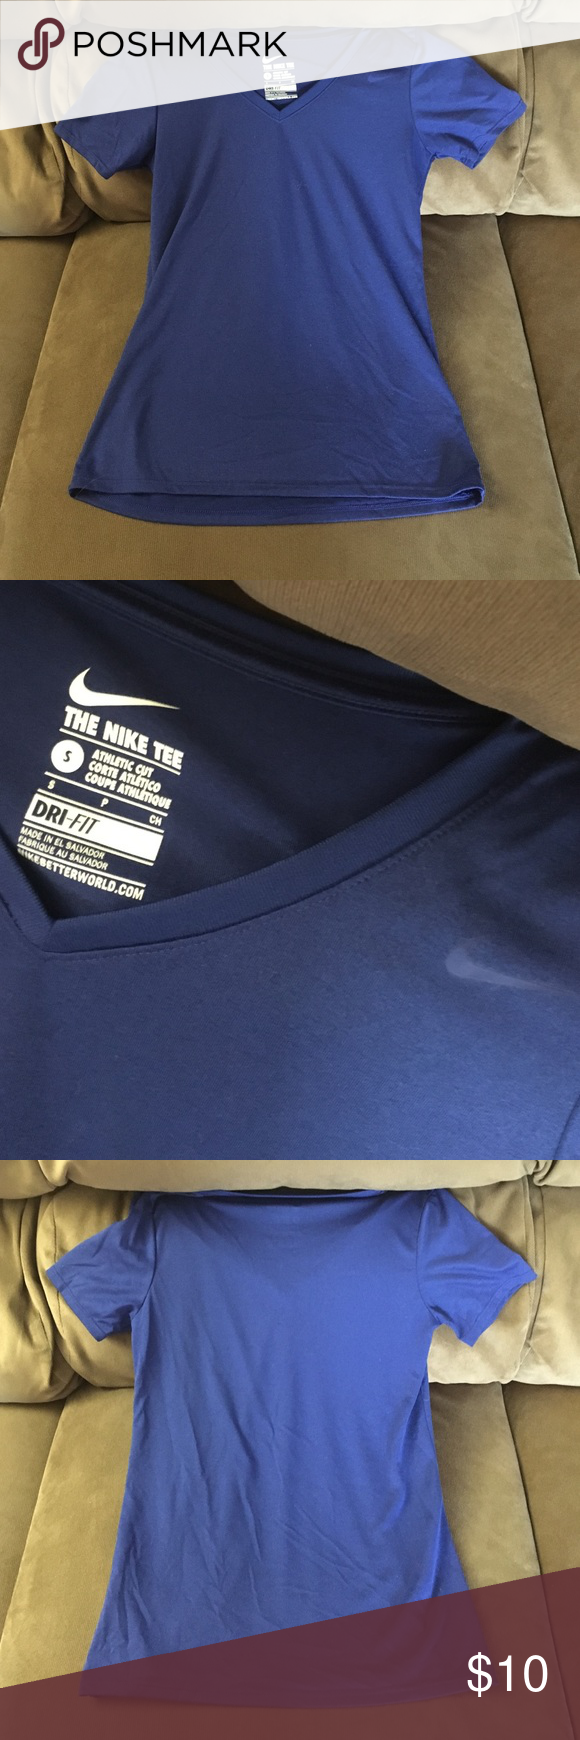 Nike Dri Fit V-Neck Size Small In excellent condition. No flaws. No piling or fading. Super cute . Fits true to size. Lowest offer is the price listed. No trades or Mercari. Made of a Dri Fit material. Nike Tops Tees - Short Sleeve